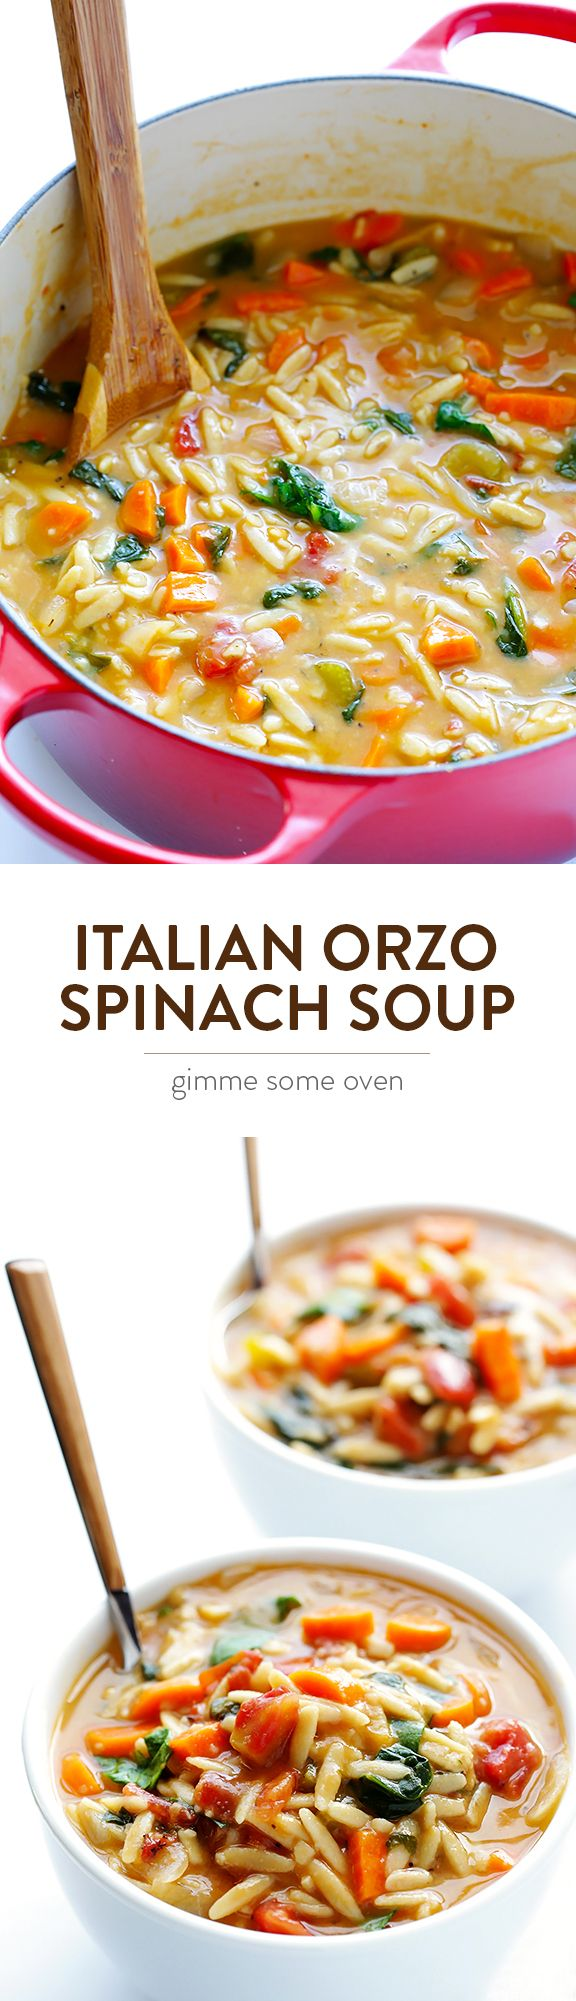 This Italian Orzo Spinach Soup is easy to make in 30 minutes, and it is wonderfully delicious and comforting.